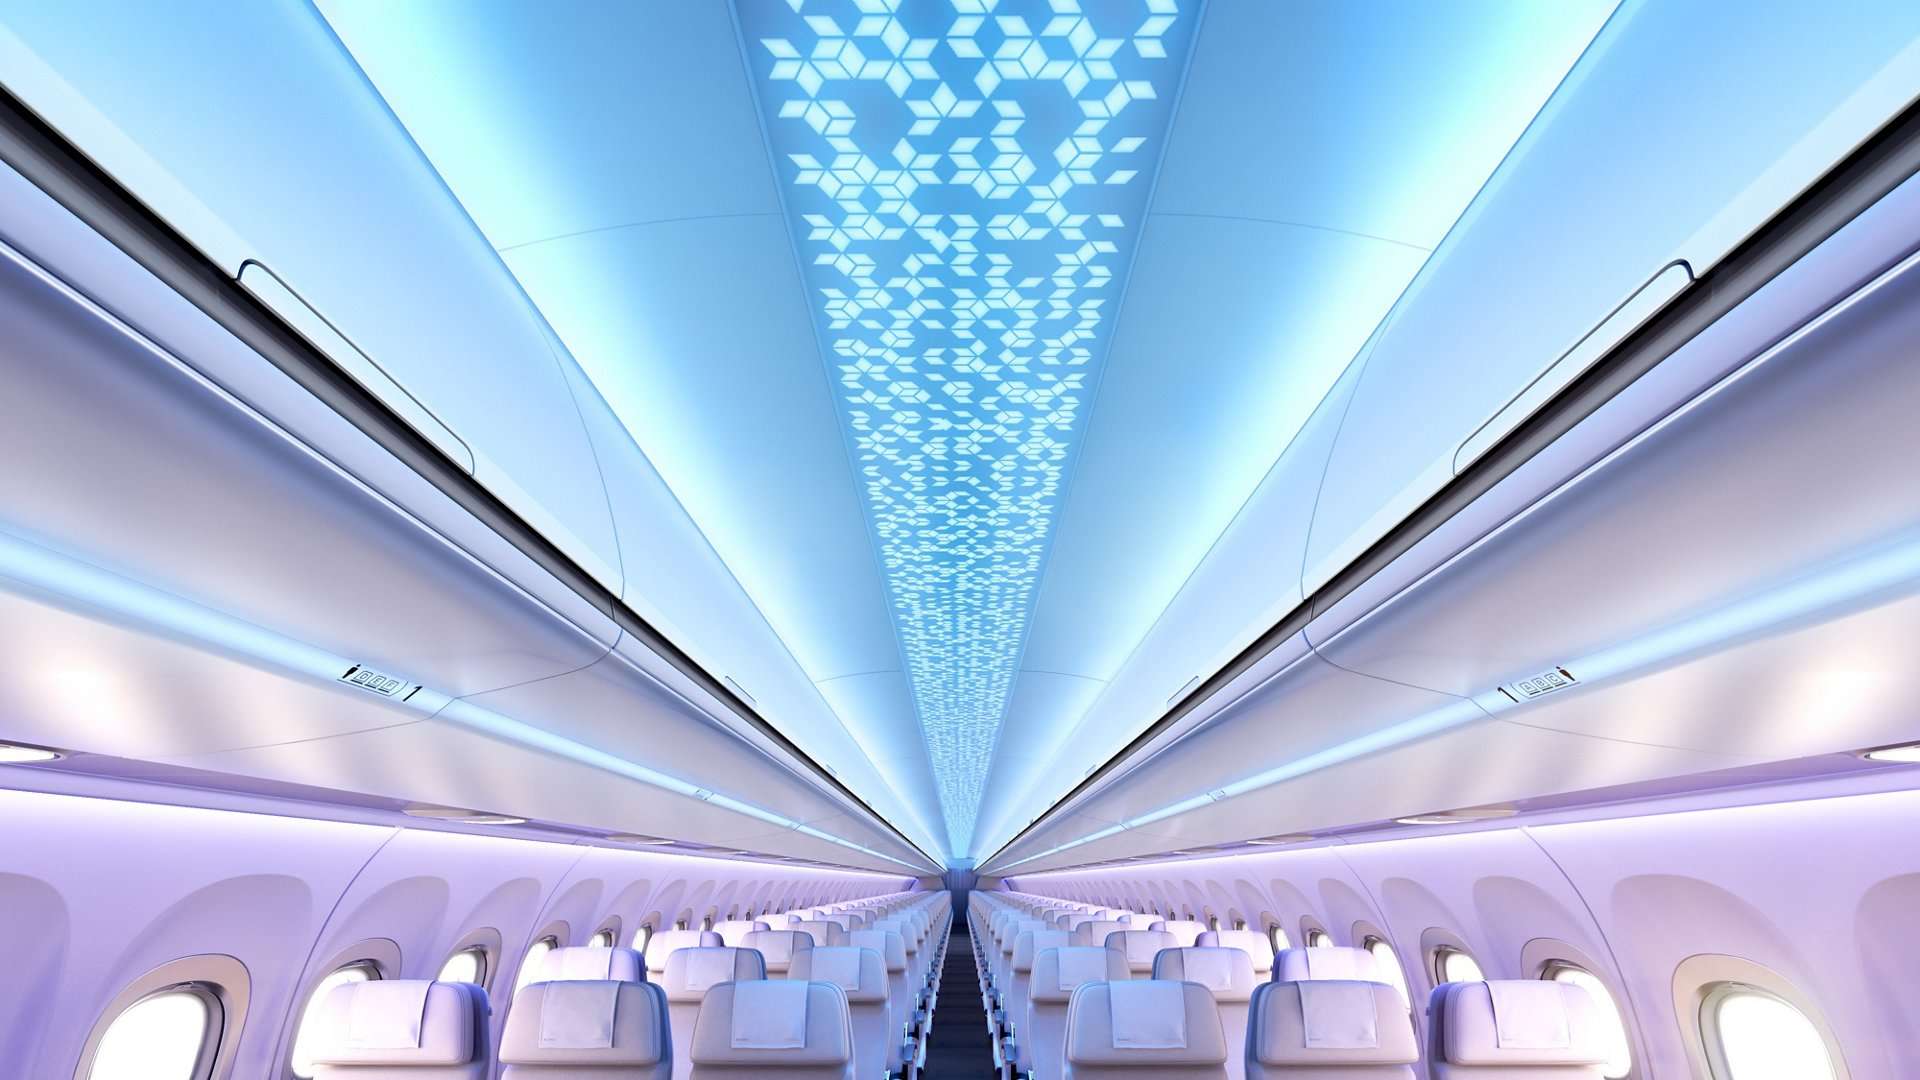 Ceiling panels with customisable patterns, in combination with full-colour LED lighting, create a warm welcome area for Airspace cabins